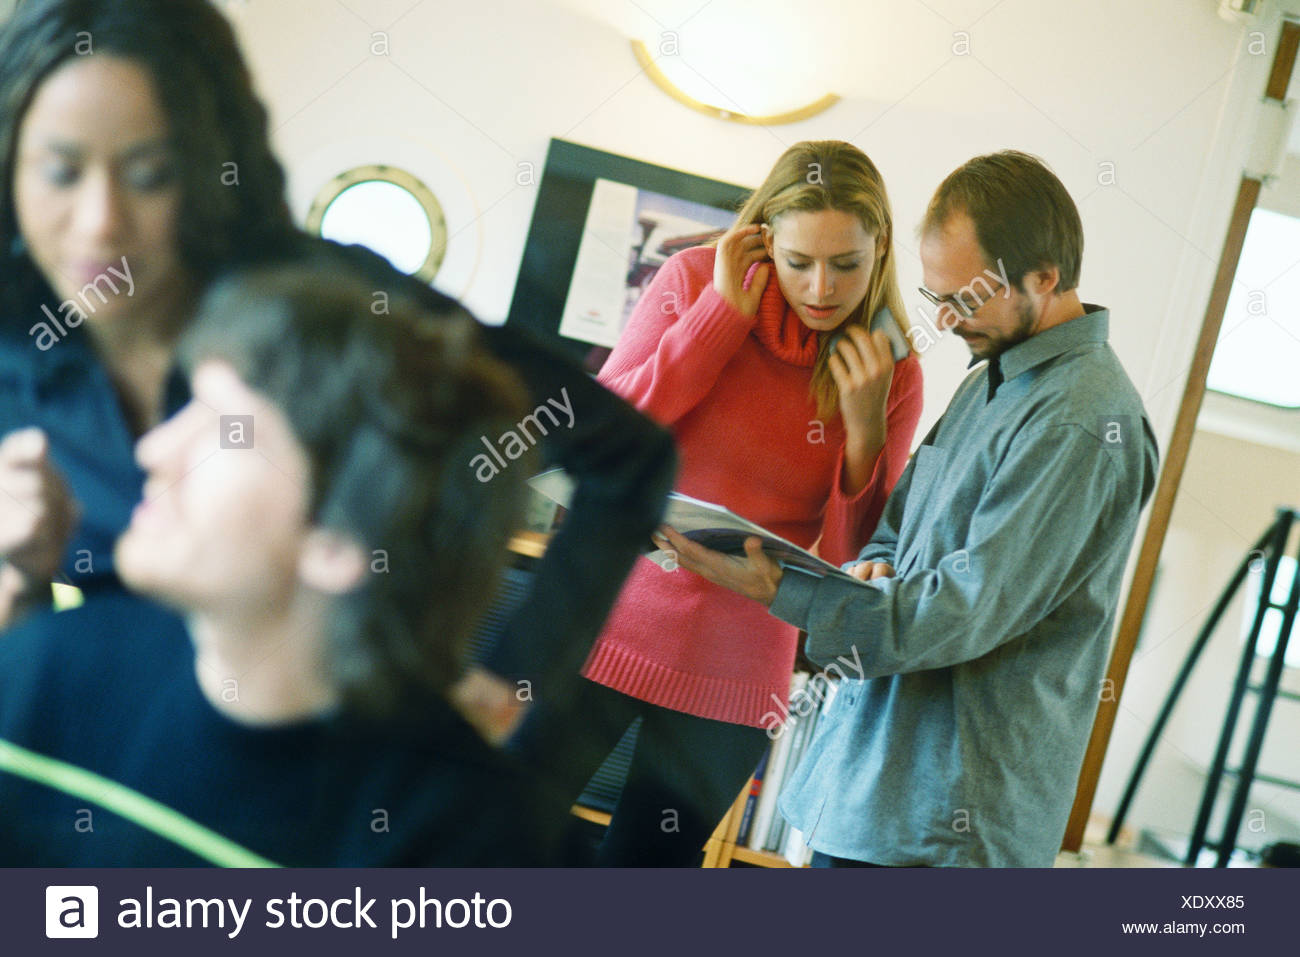 Man and woman looking at catalog, second man and woman in foreground Stock Photo